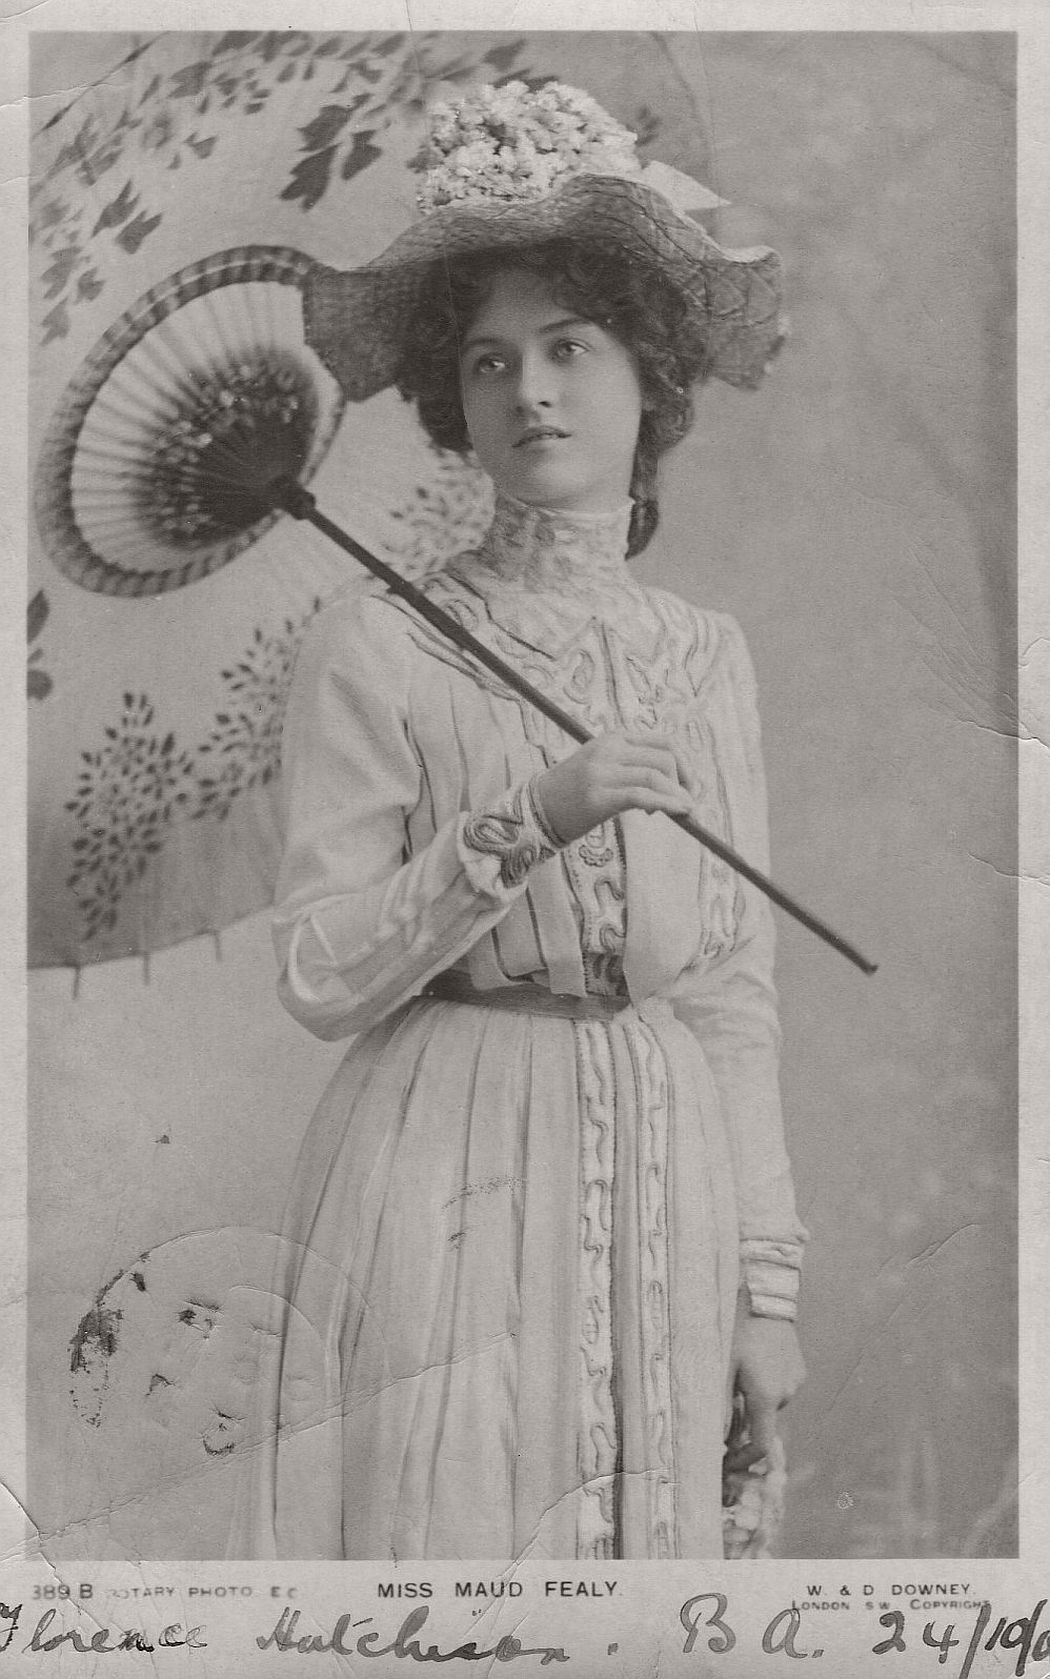 vintage-postcard-of-actress-miss-maude-fealy-1900s-early-xx-century-04